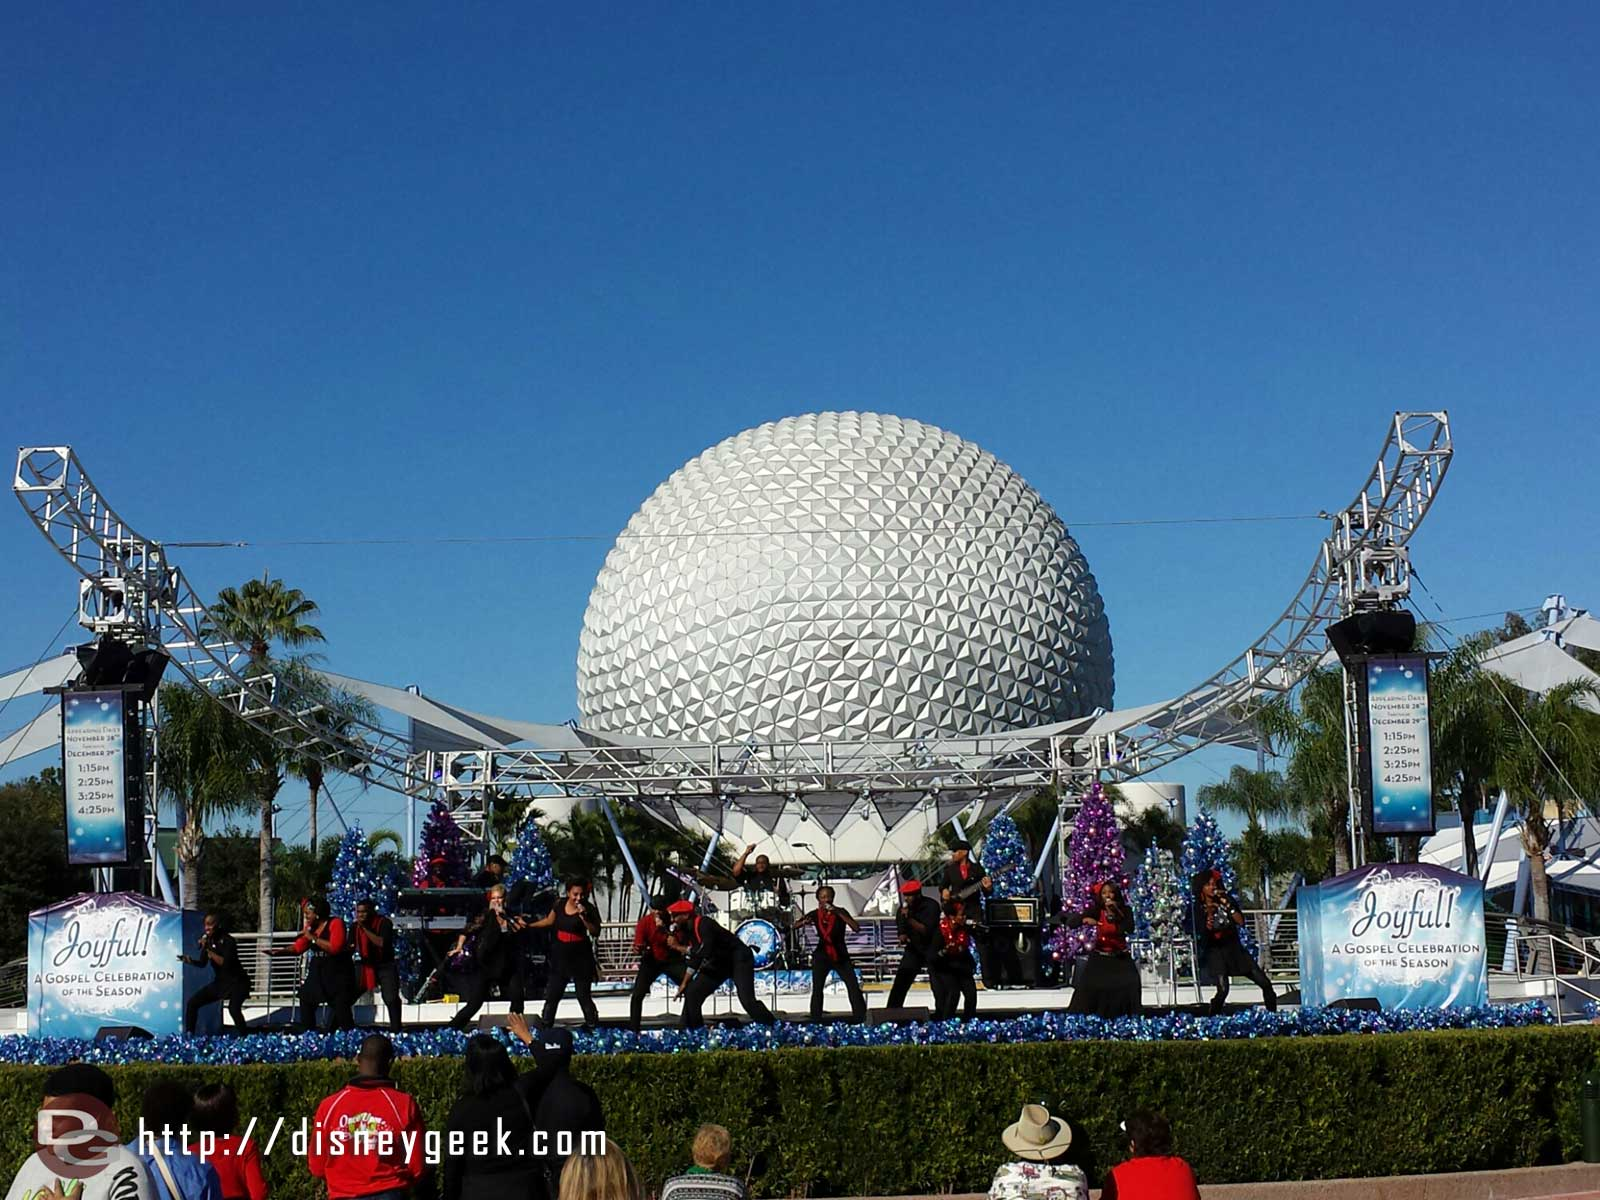 Joyful A Gospel Celebration of the Season #Epcot